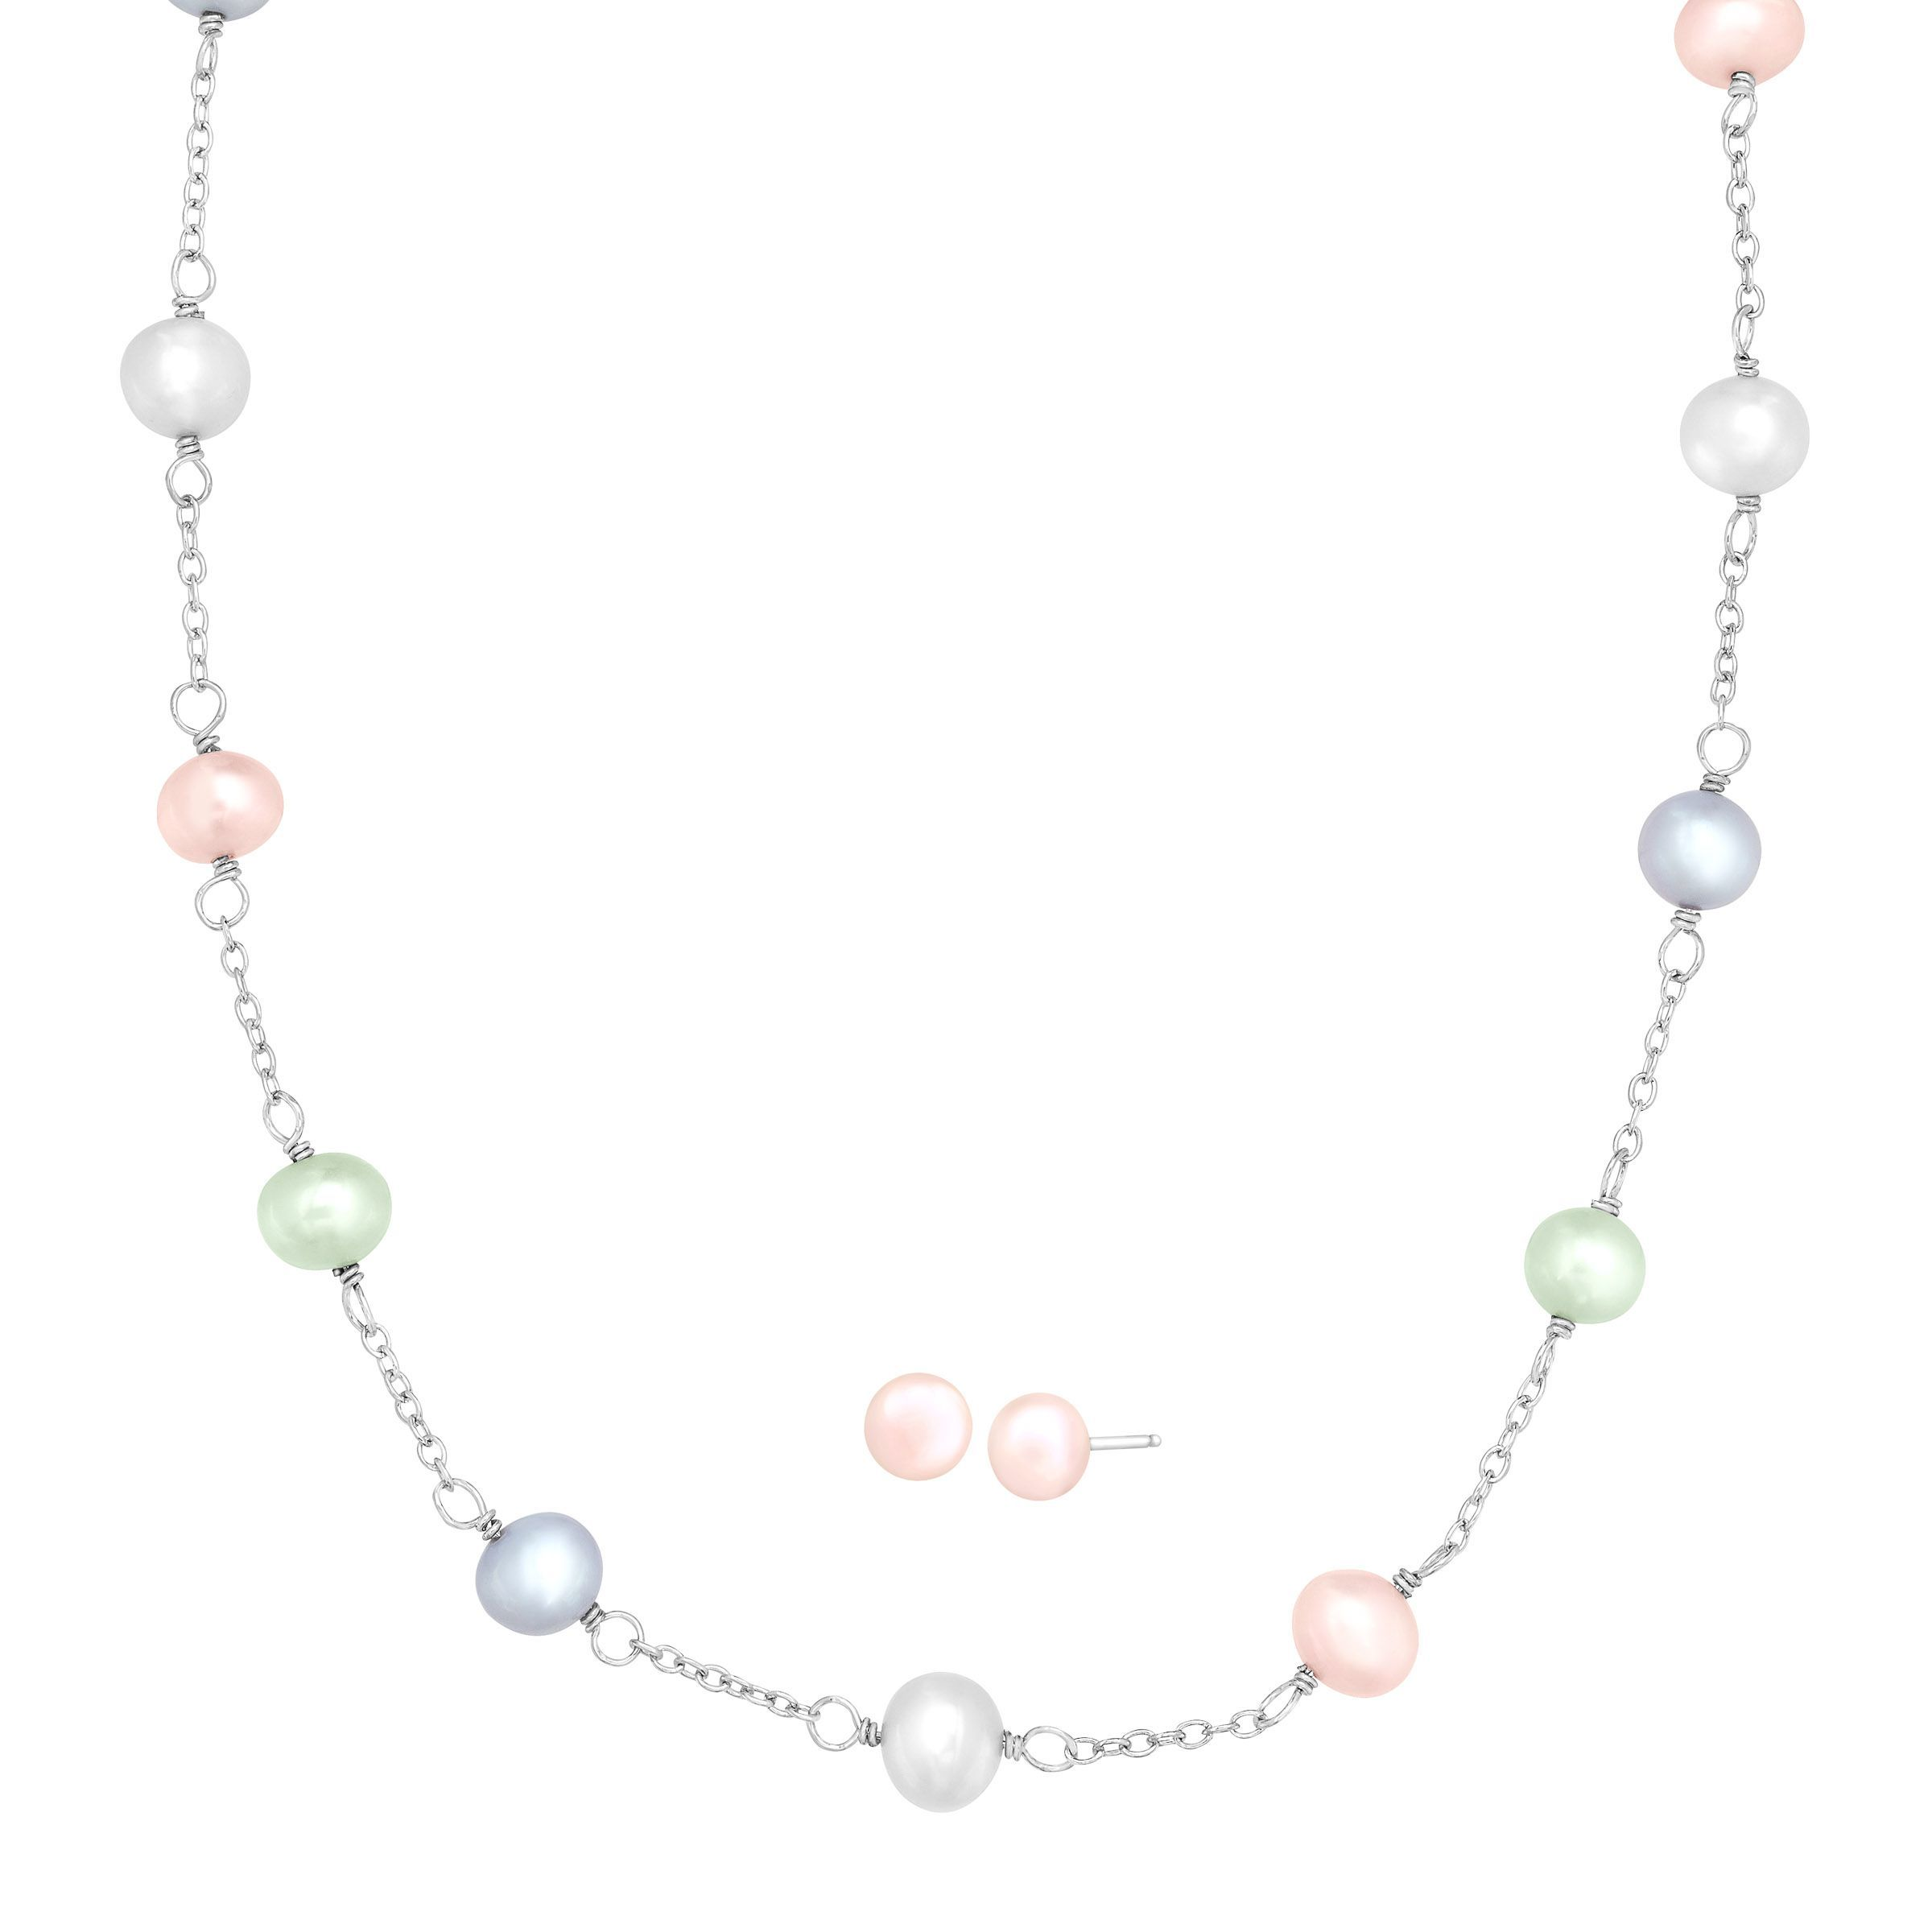 Girl S 6 Mm Freshwater Pearl Necklace Earring Set In Sterling